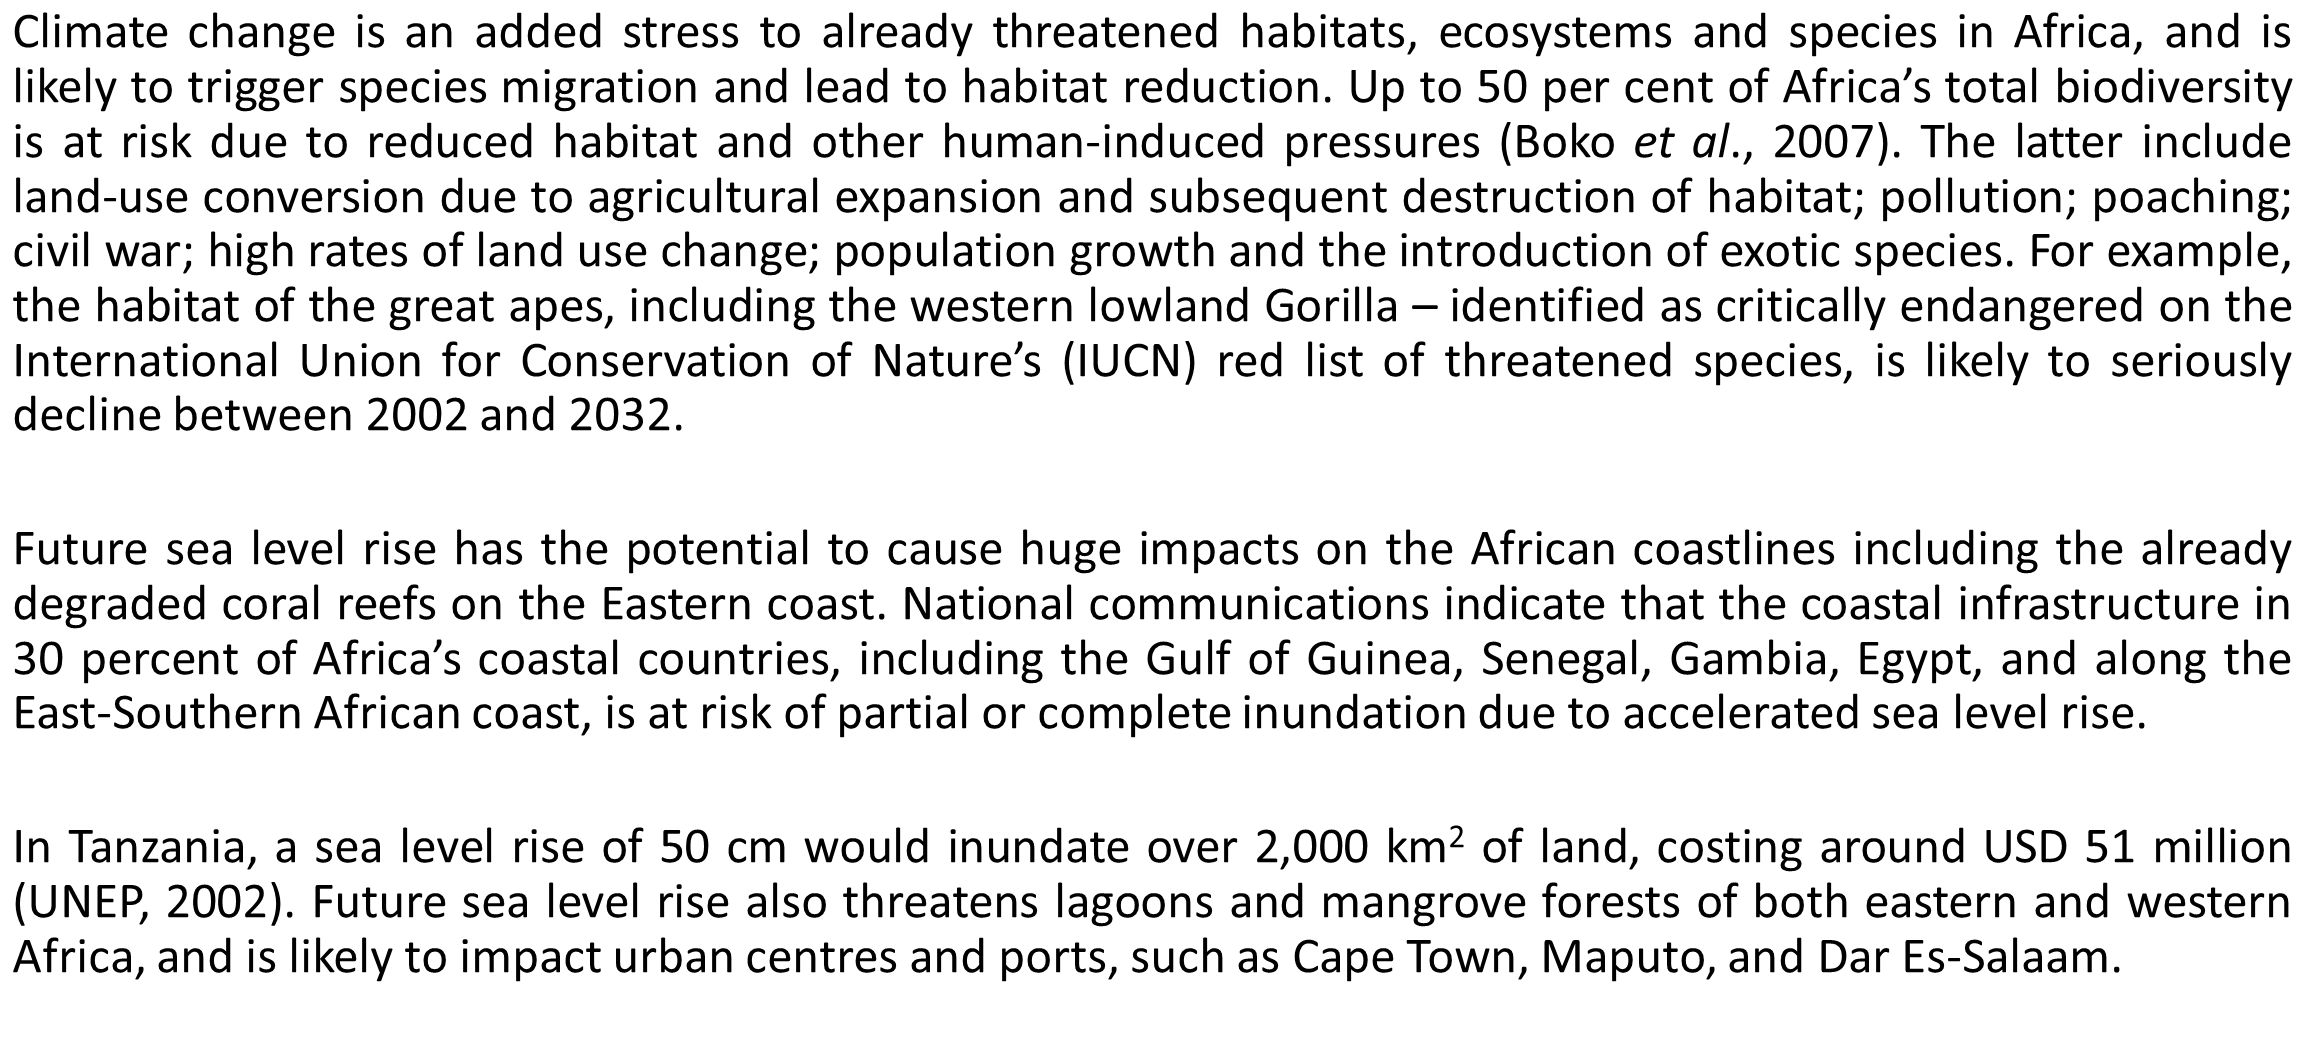 Climate change is an added stress to already threatened habitats, ecosystems and species in Africa, and is likely to trigger species migration and lead to habitat reduction. Up to 50 per cent of Africa's total biodiversity is at risk due to reduced habitat and other human-induced pressures (Boko et al., 2007). The latter include land-use conversion due to agricultural expansion and subsequent destruction of habitat; pollution; poaching; civil war; high rates of land use change; population growth and the introduction of exotic species. For example, the habitat of the great apes, including the western lowland Gorilla – identified as critically endangered on the International Union for Conservation of Nature's (IUCN) red list of threatened species, is likely to seriously decline between 2002 and 2032.